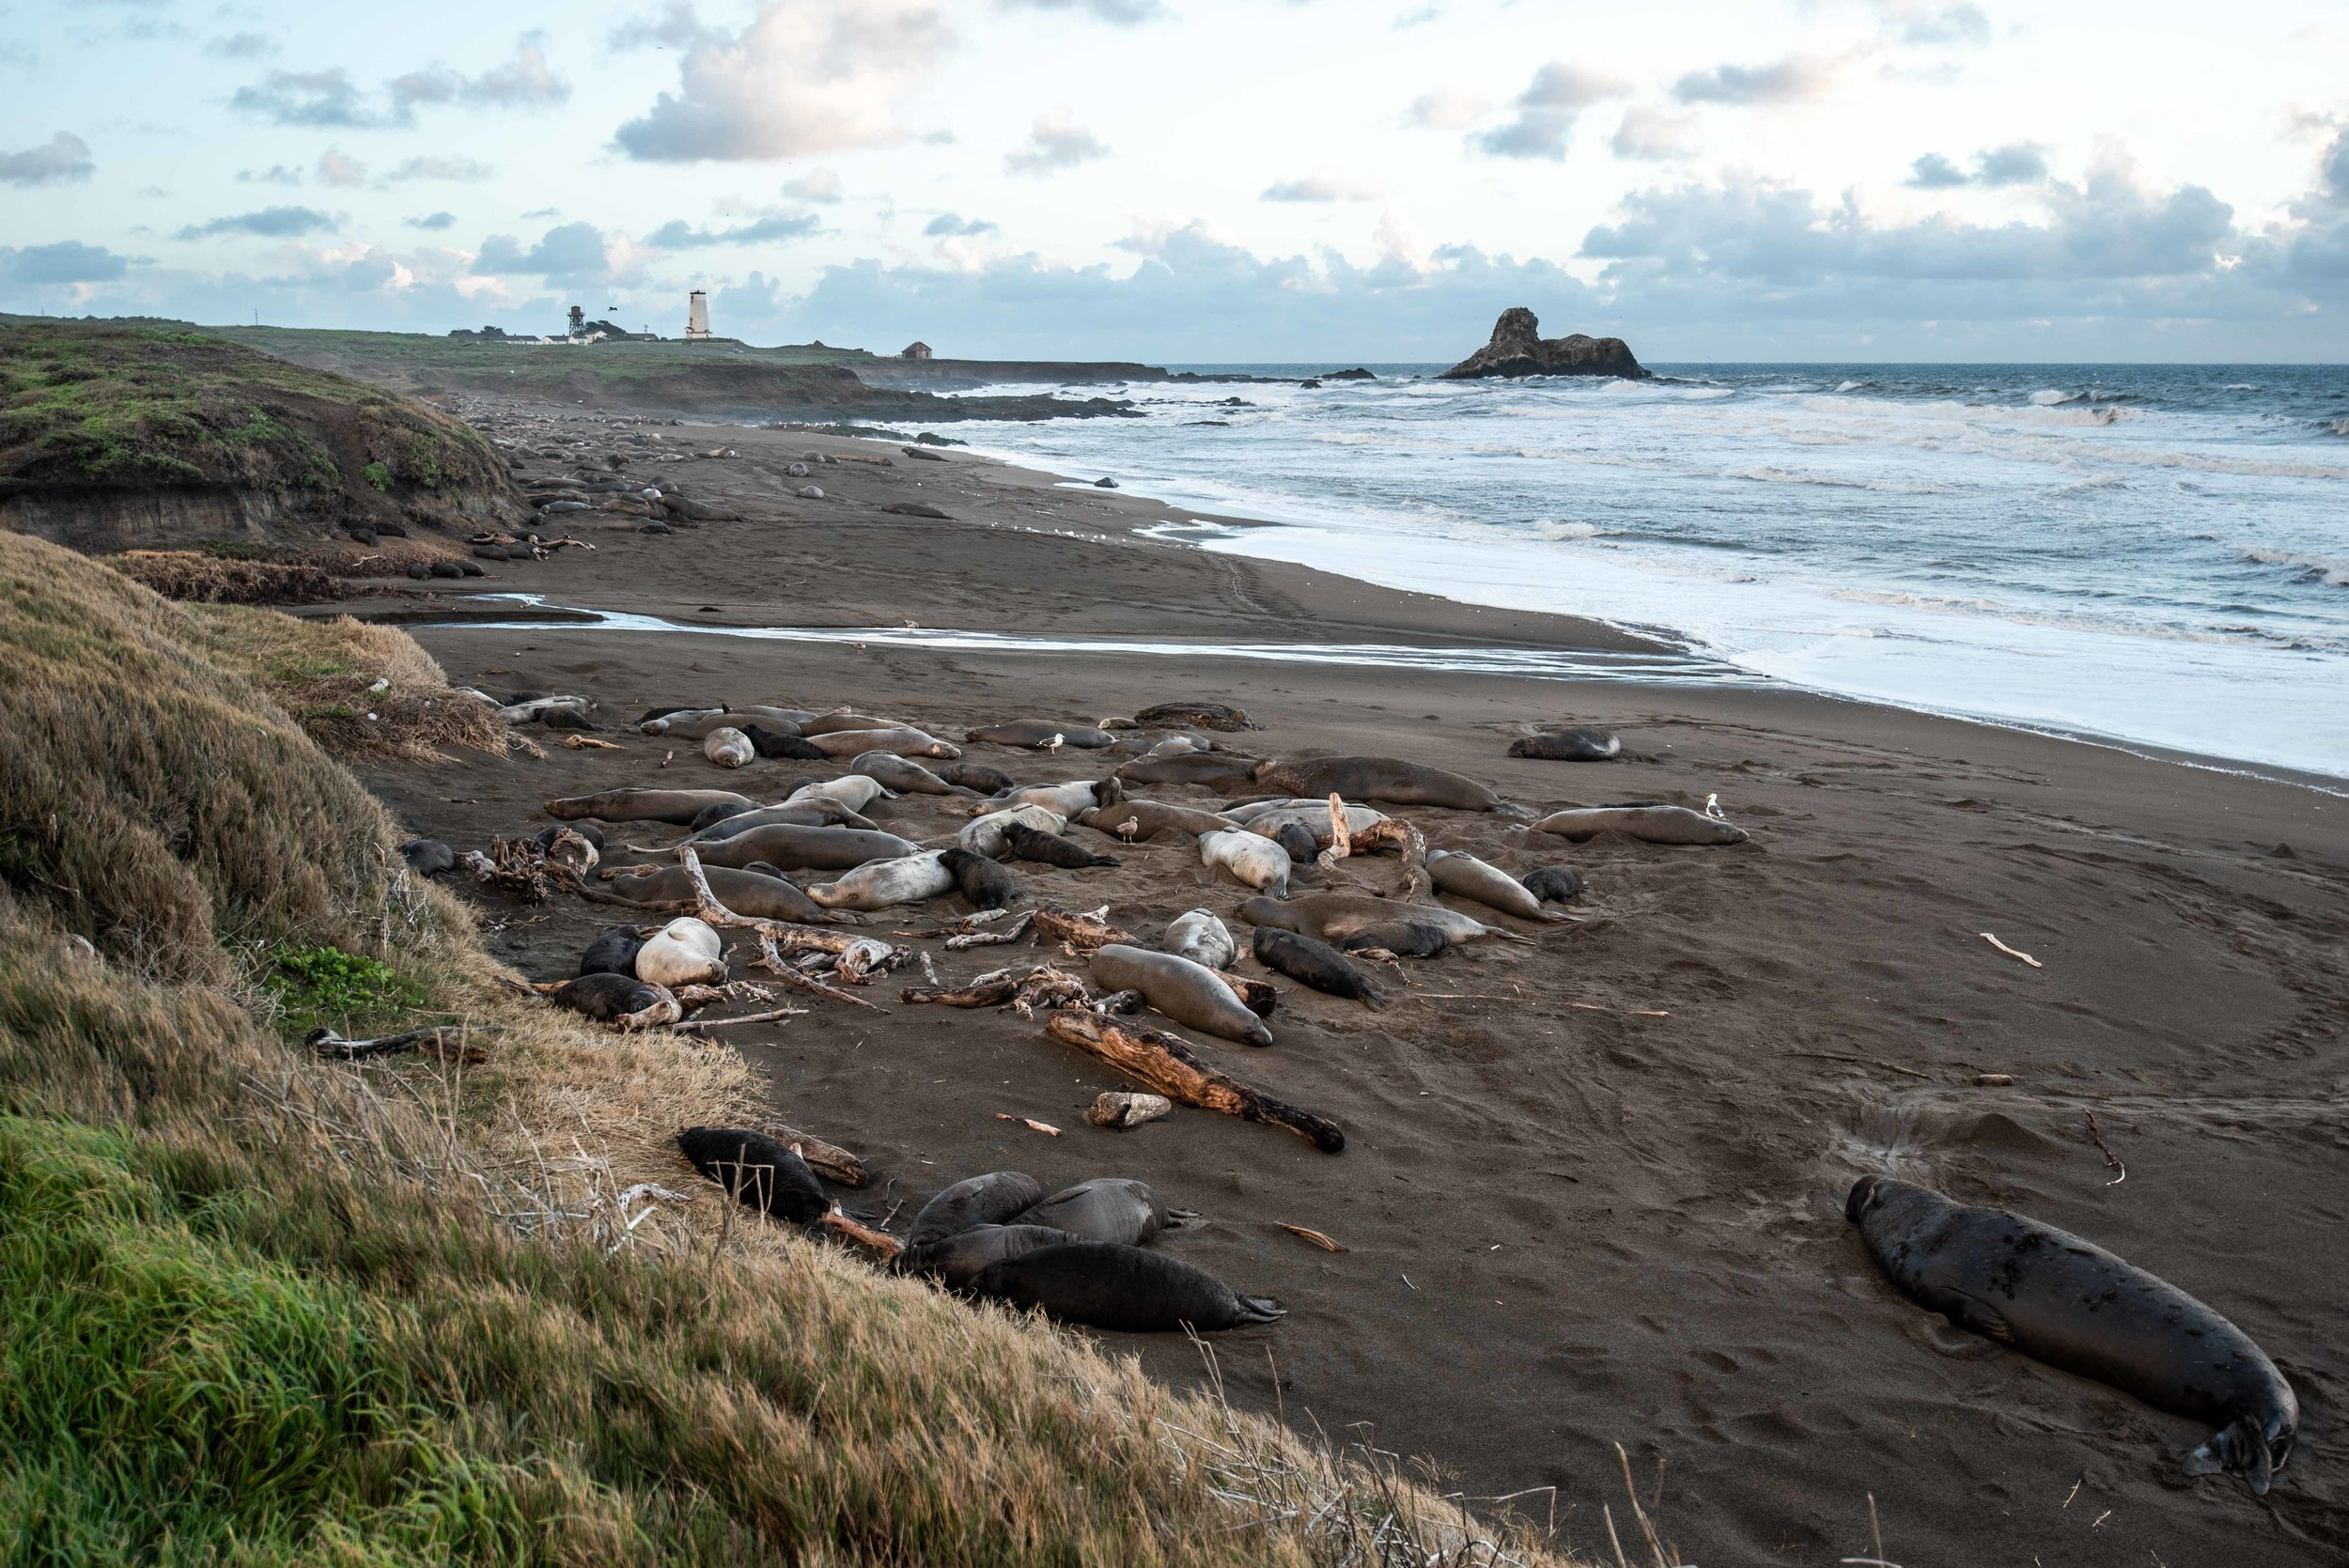 The elephant seals. And off in the distance, another closed lighthouse.